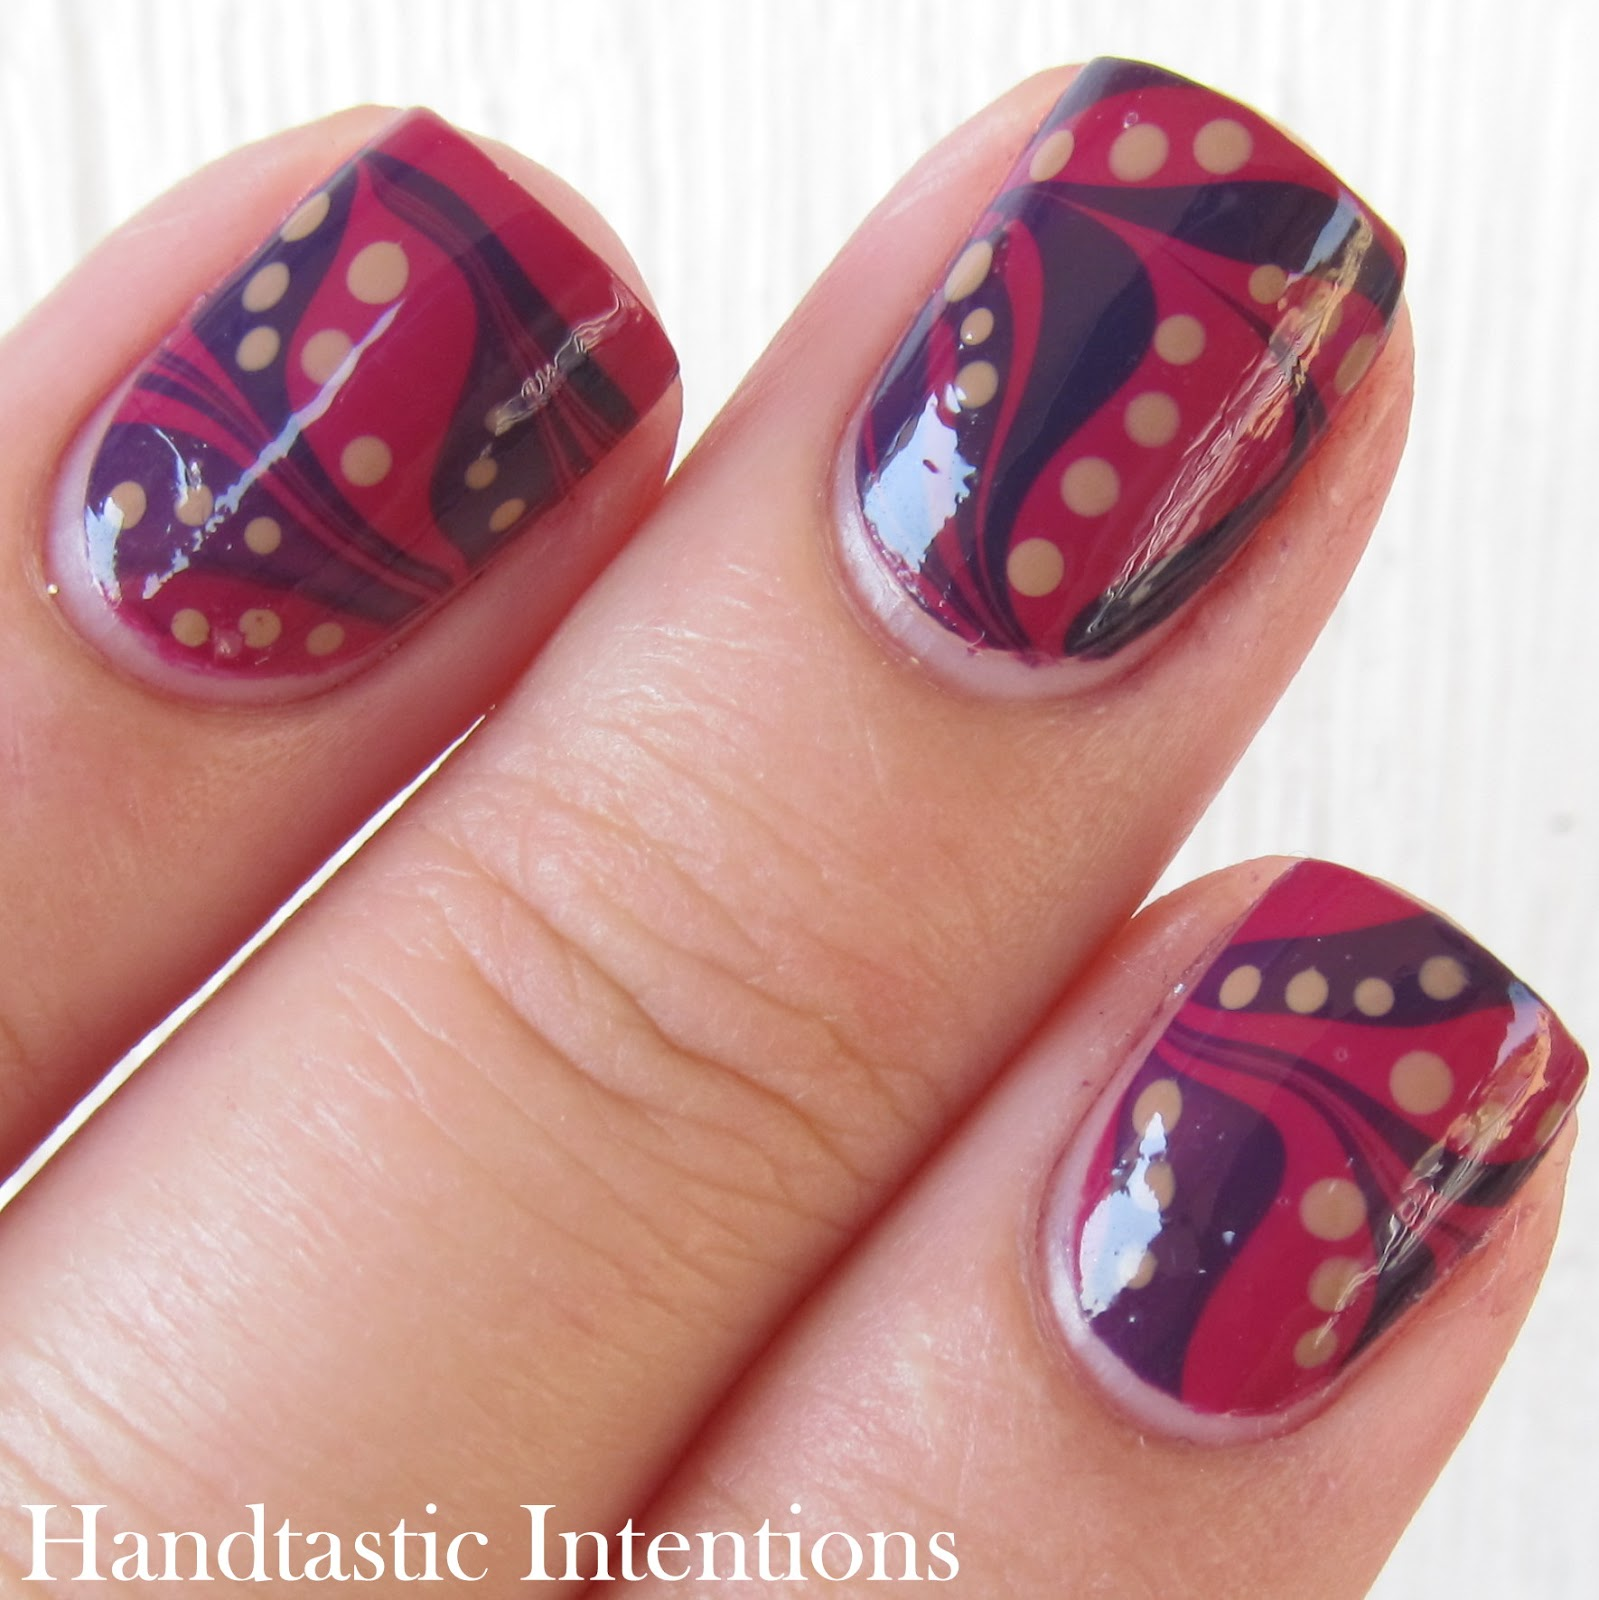 Handtastic Intentions: Nail Art: #31DC2014 Day 20 Water Marble